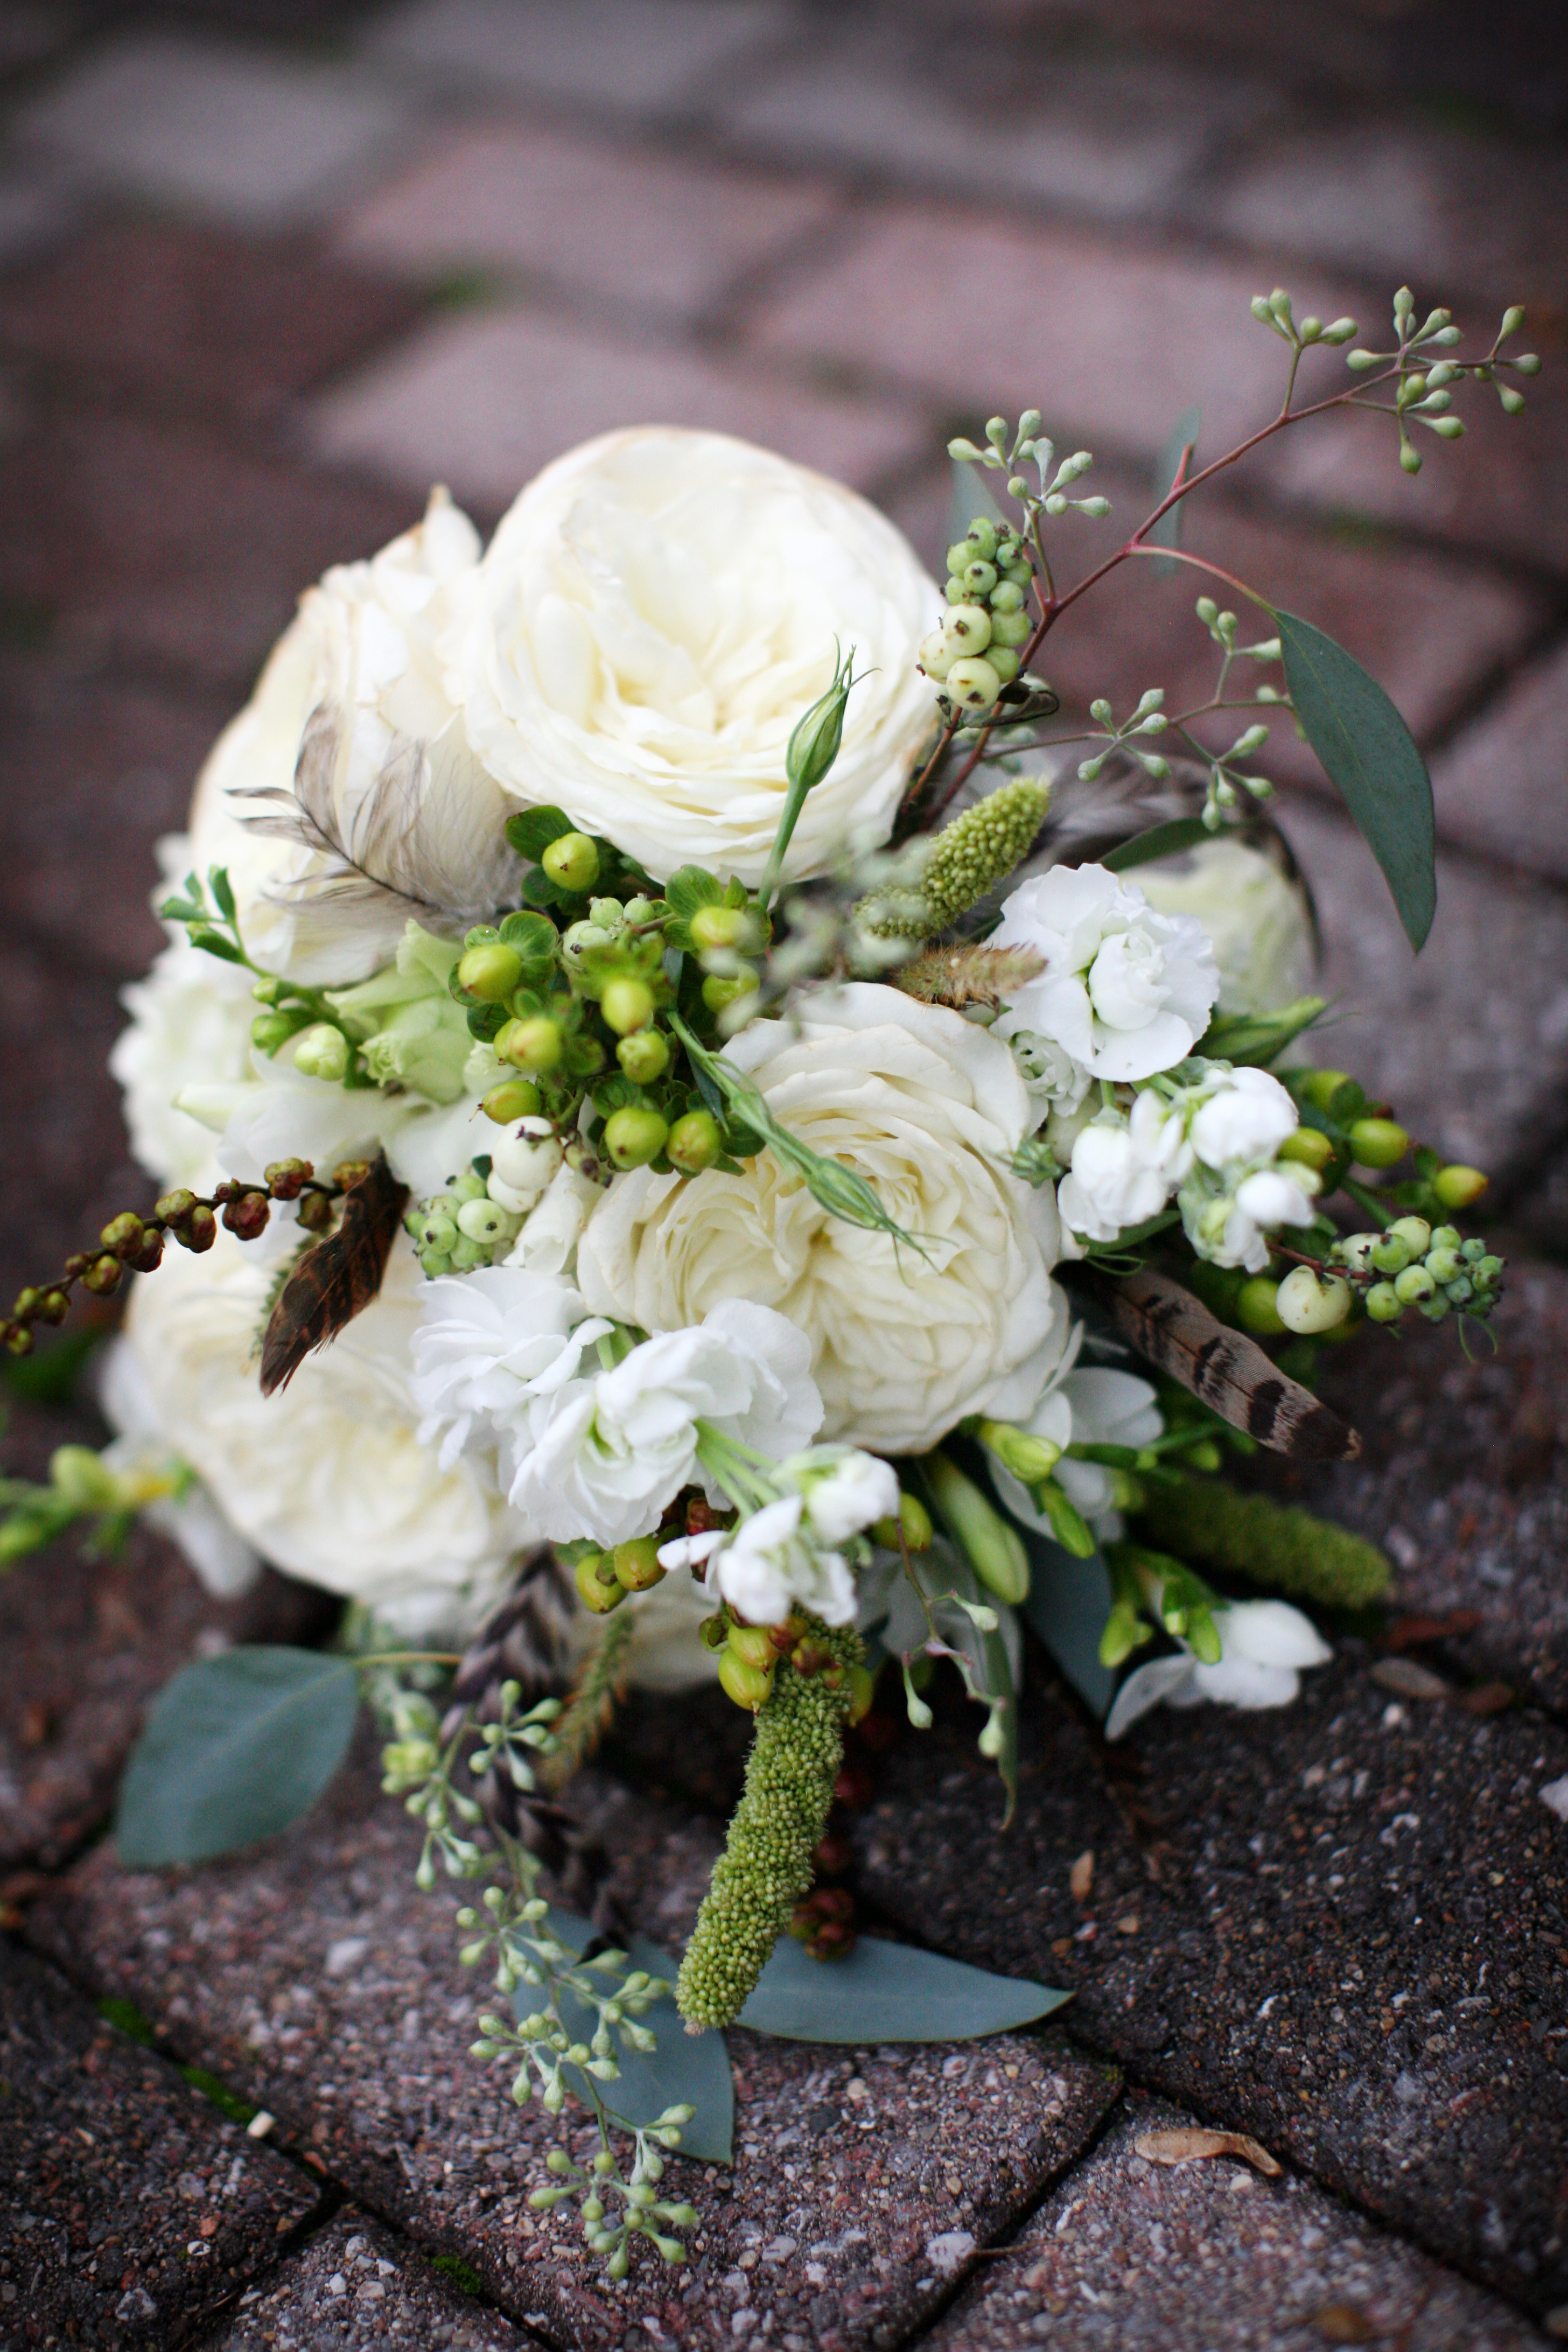 Flowers & Decor, Real Weddings, Wedding Style, white, green, Bride Bouquets, Fall Weddings, Northeast Real Weddings, Rustic Real Weddings, Fall Real Weddings, Garden Real Weddings, Garden Weddings, Rustic Weddings, Eco-Friendly Wedding Flowers & Decor, Garden Wedding Flowers & Decor, Rustic Wedding Flowers & Decor